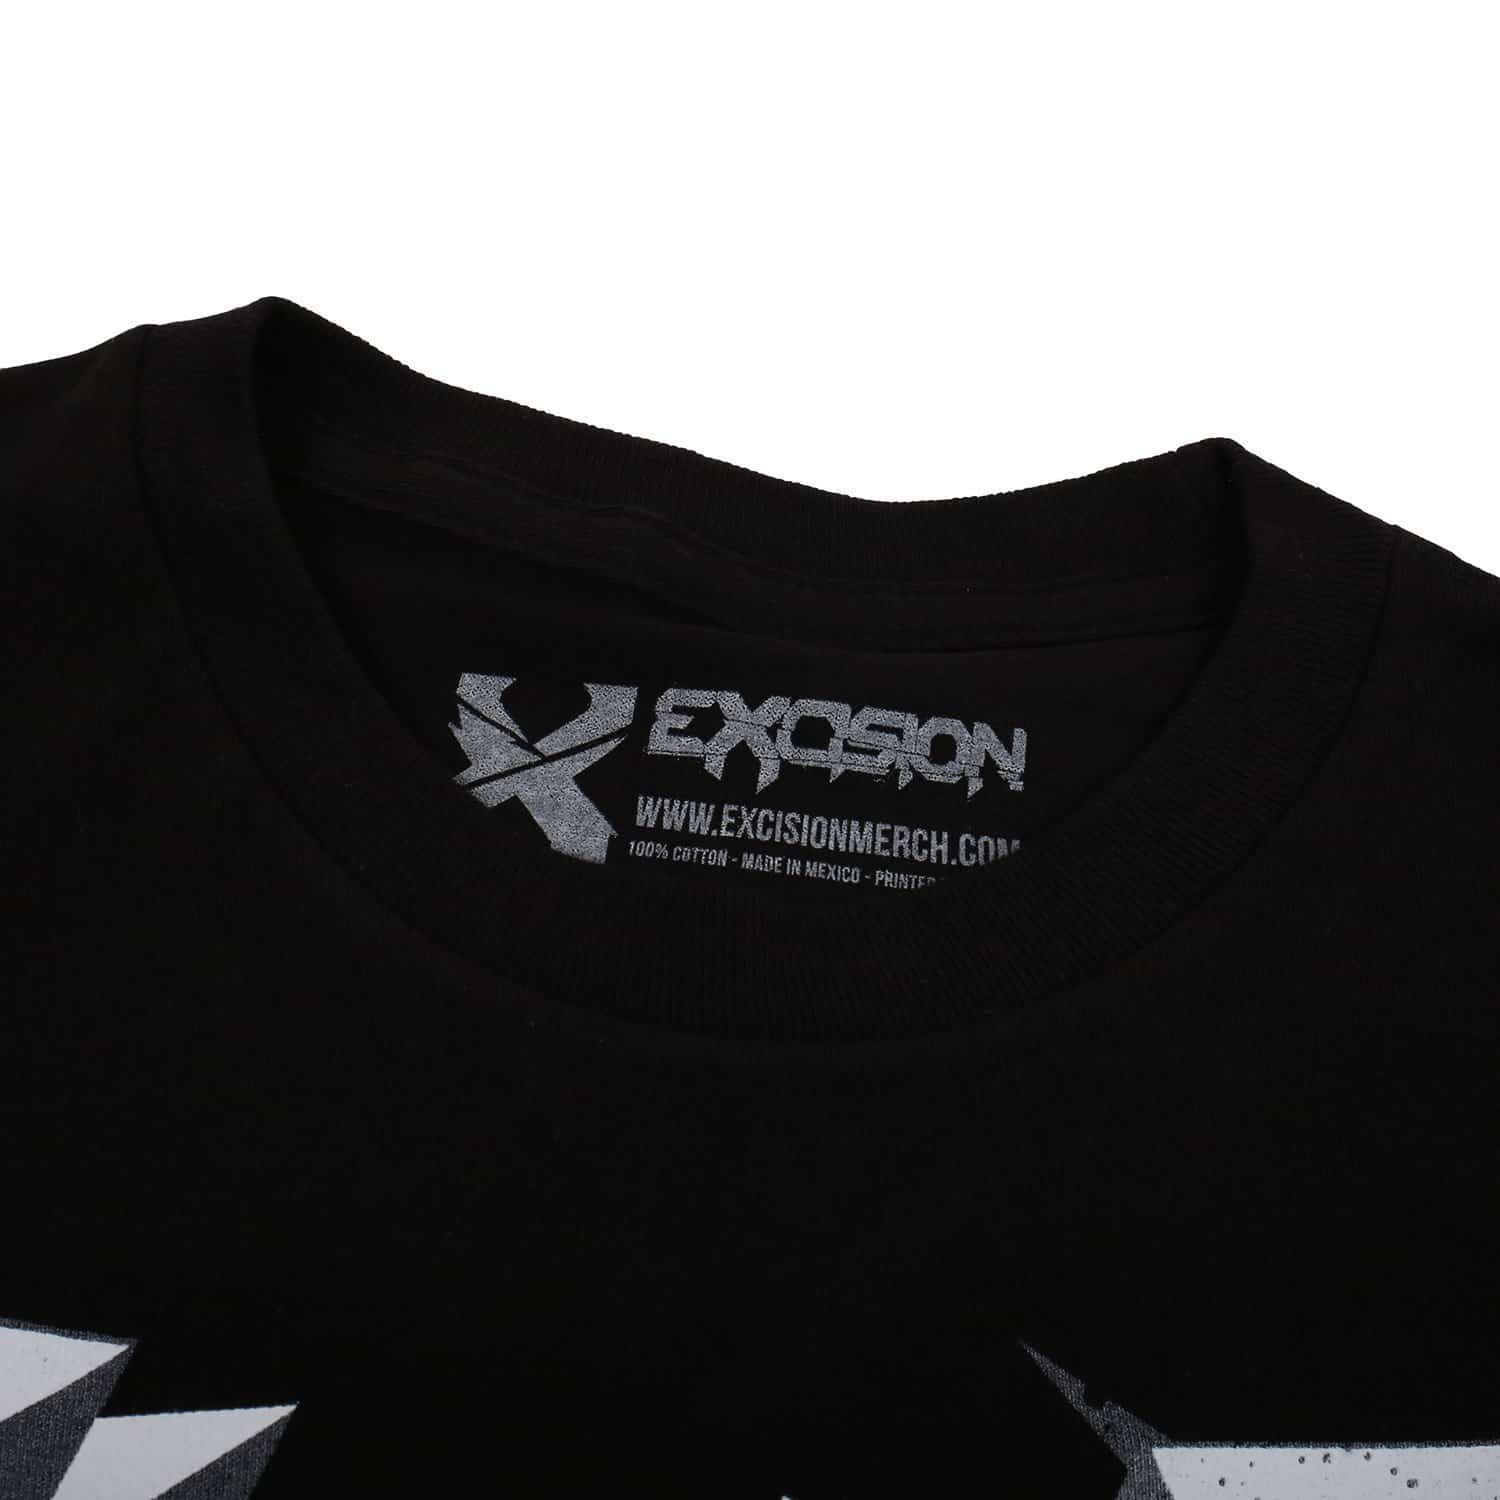 Excision 3DX Unisex T-Shirt - Black/White